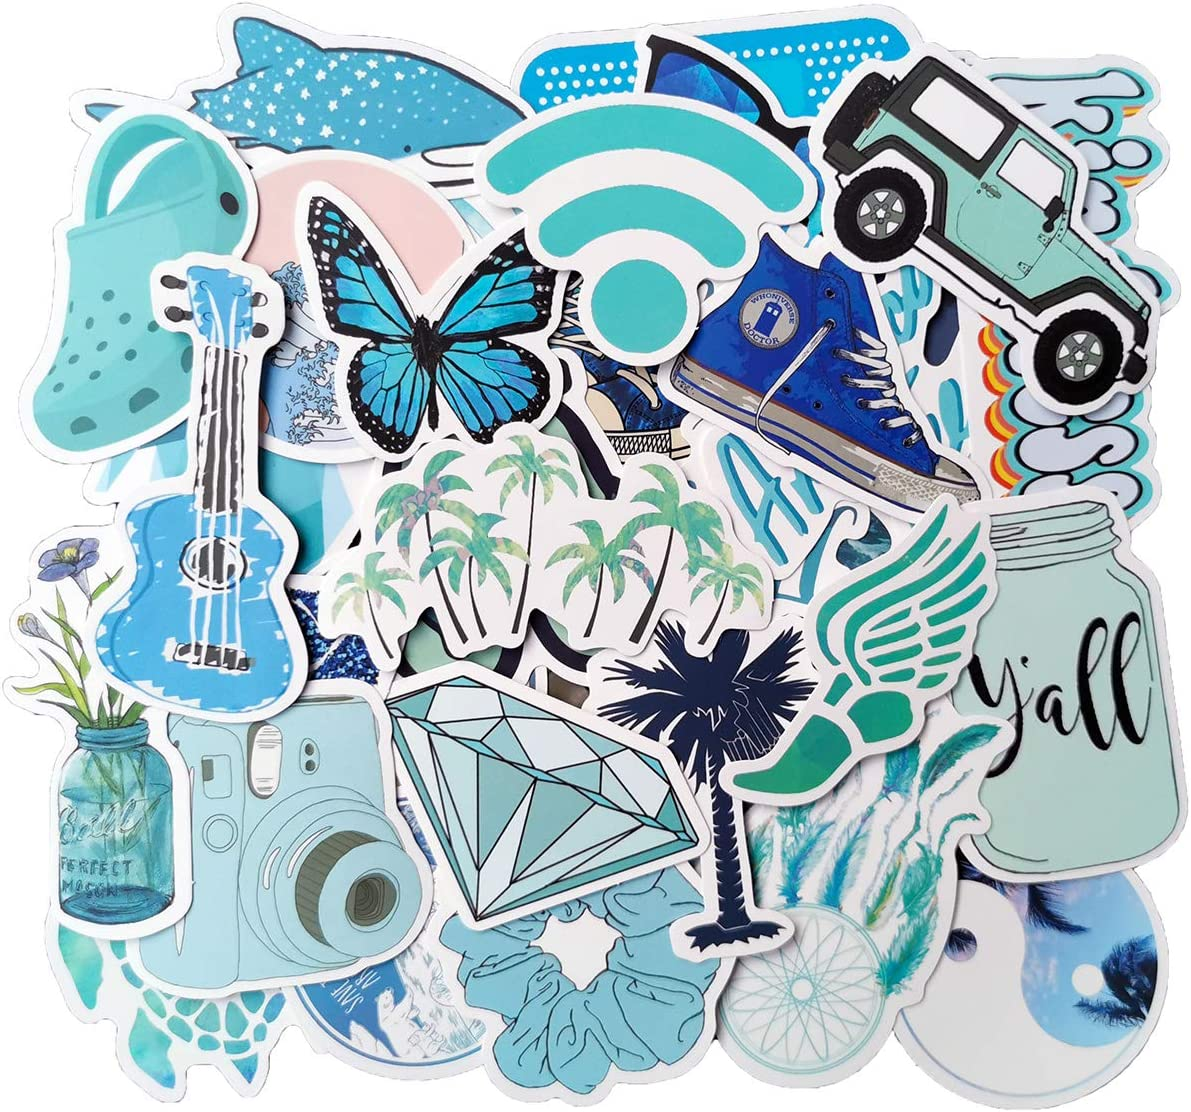 Cute Blue Stickers(50pcs), Laptop and Water Bottle Decal Sticker Pack for Men Women Teens Friends Skateboard Bike Car Luggage Vinyl Stickers Waterproof